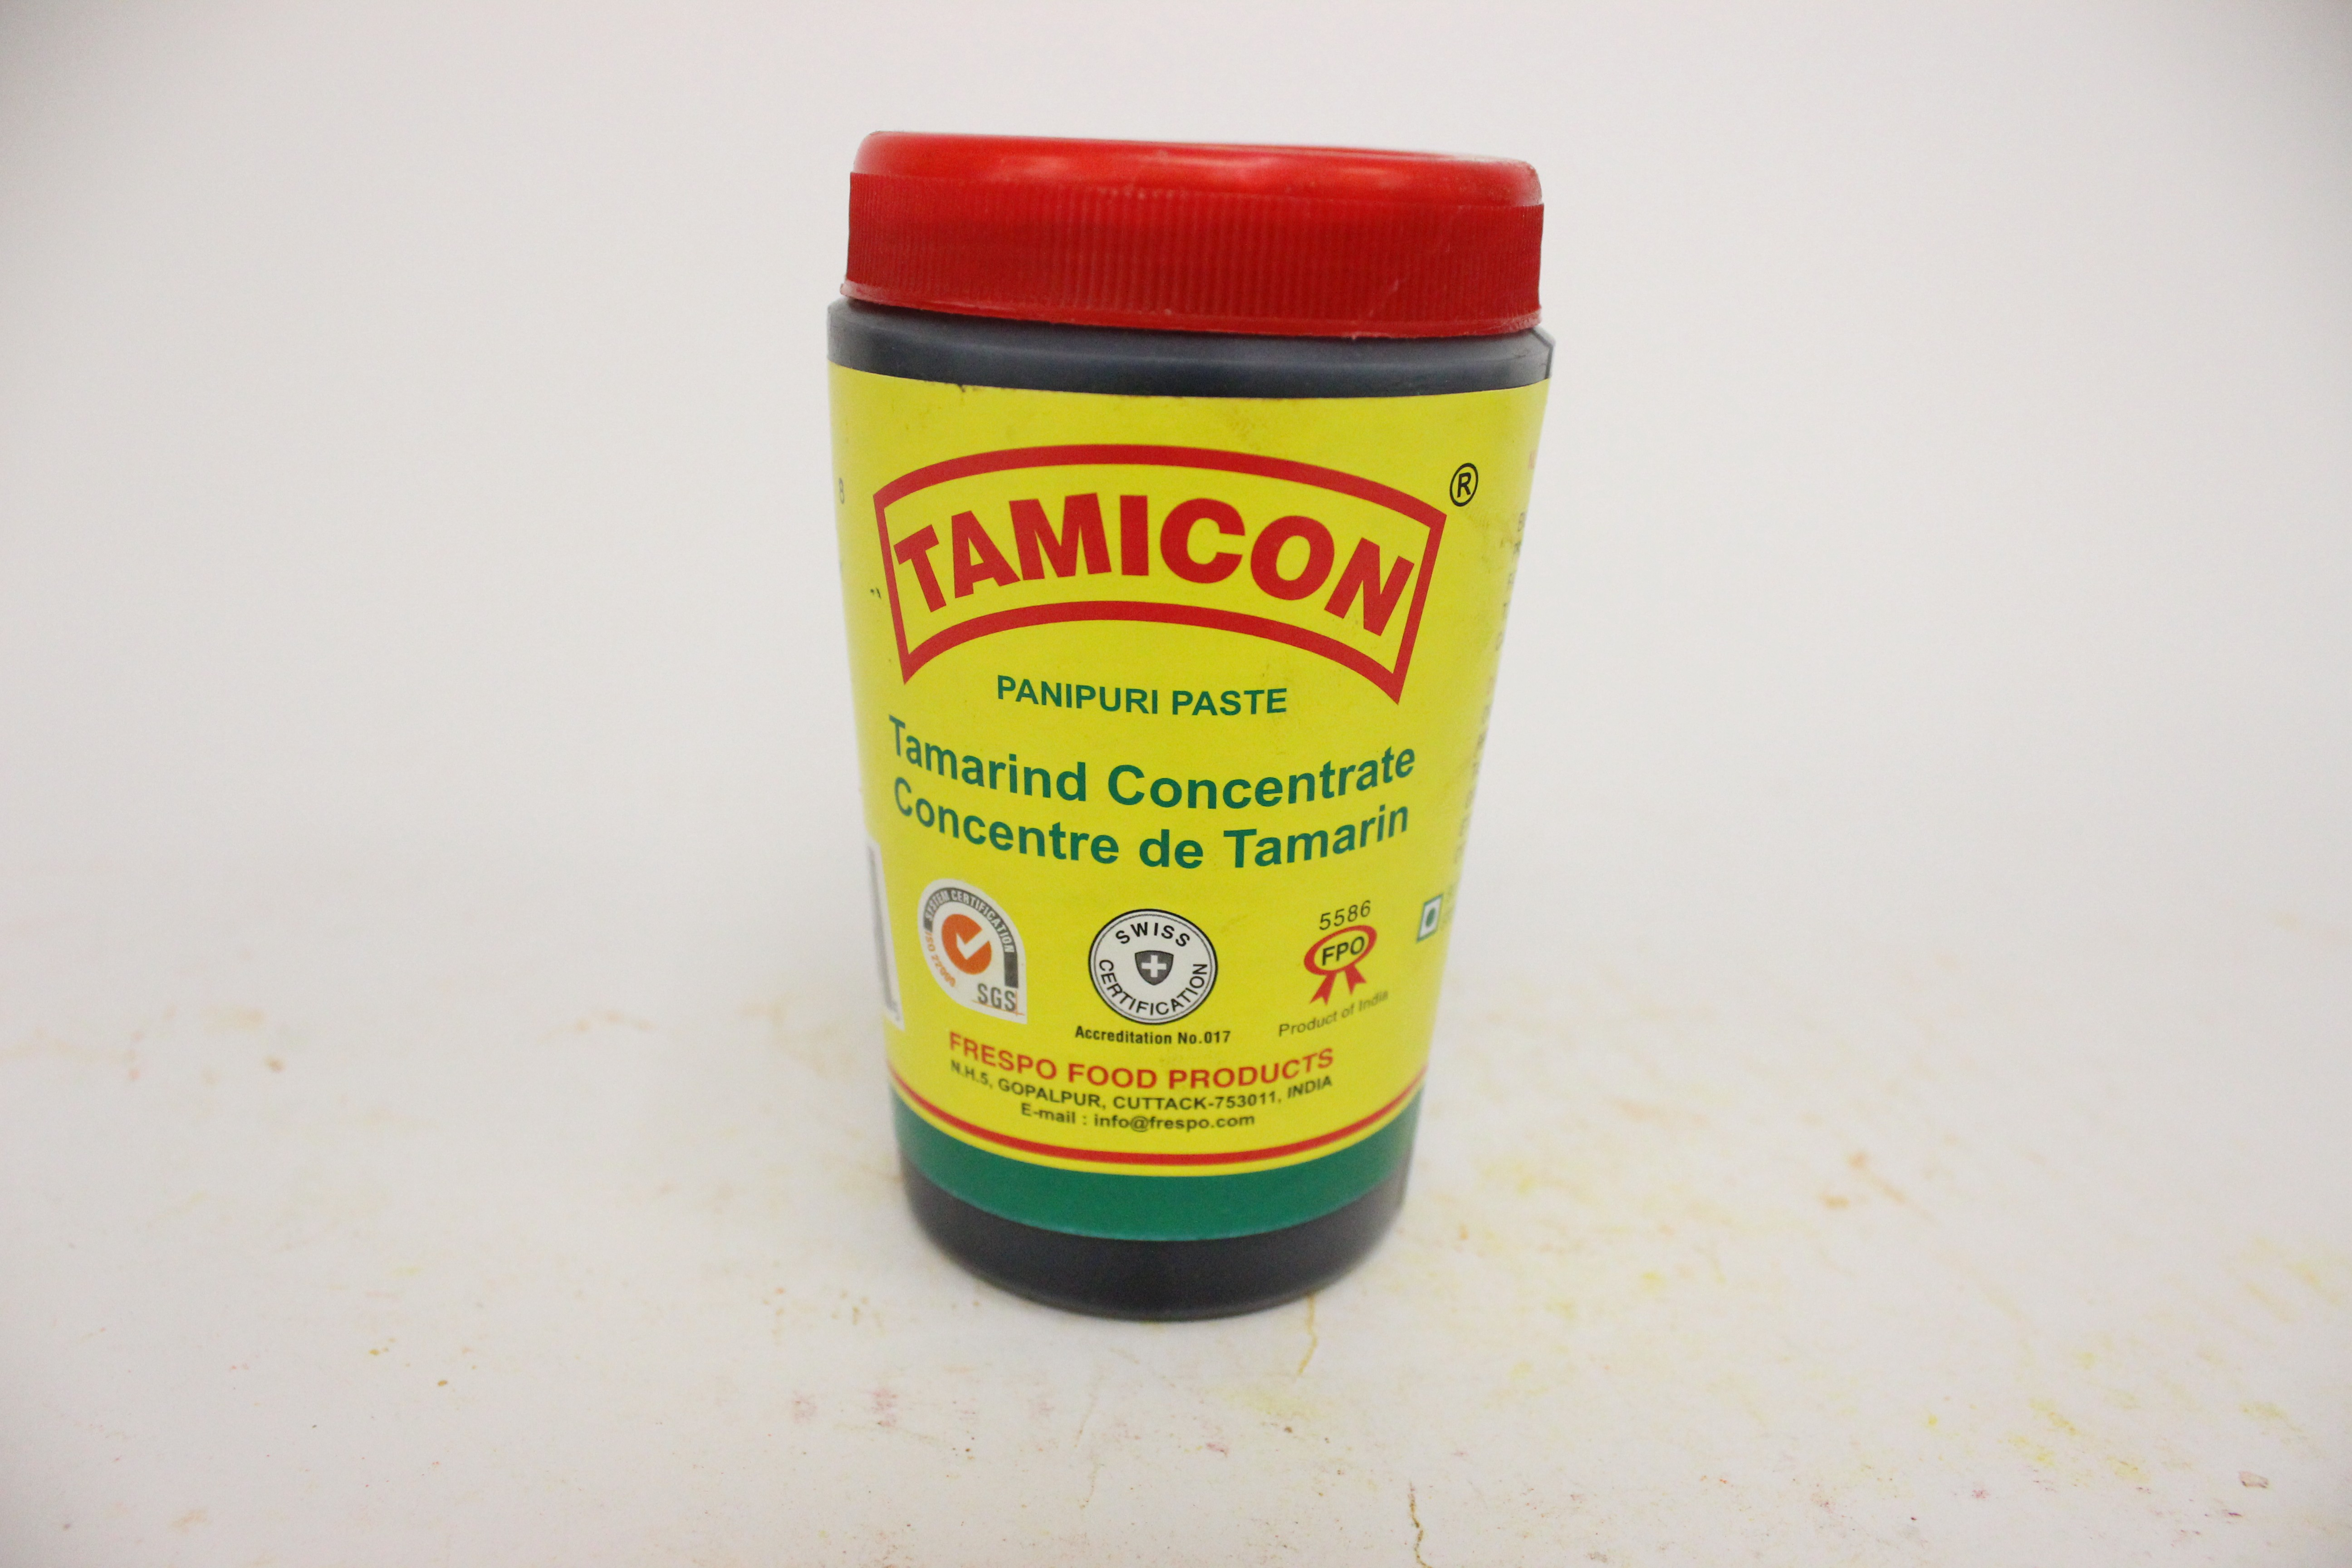 Tamicon Tamarind Concentrate 227 grm